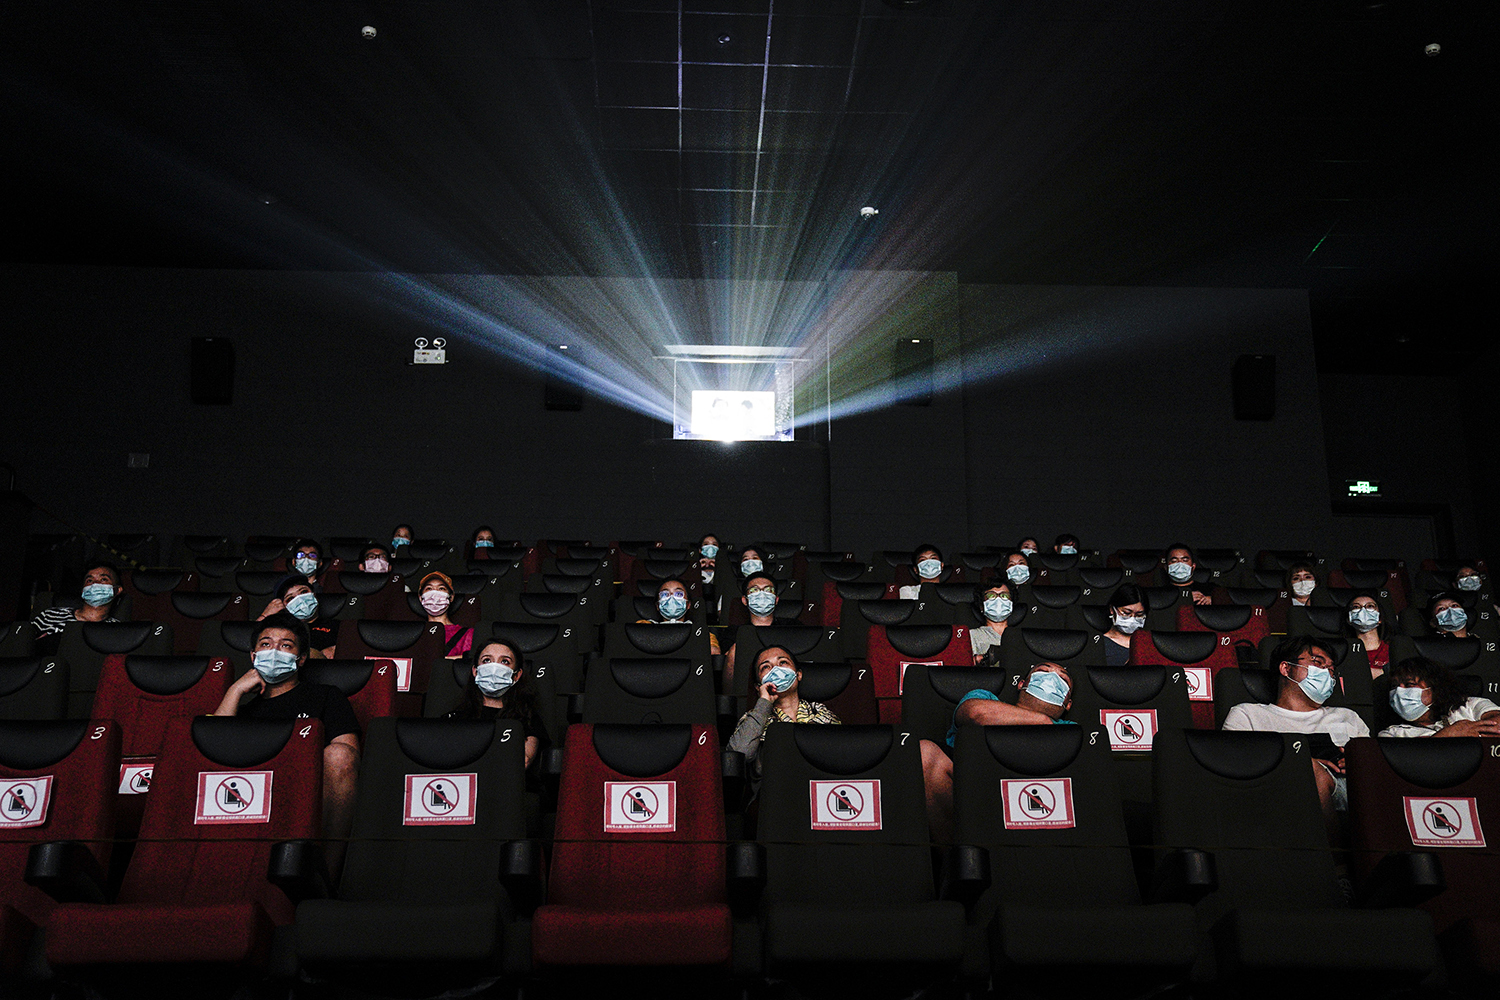 Residents watch a movie in a cinema in Wuhan, China, on July 20. The China Film Administration allowed cinemas in low-risk areas to resume operation with effective epidemic prevention measures in place. Getty Images